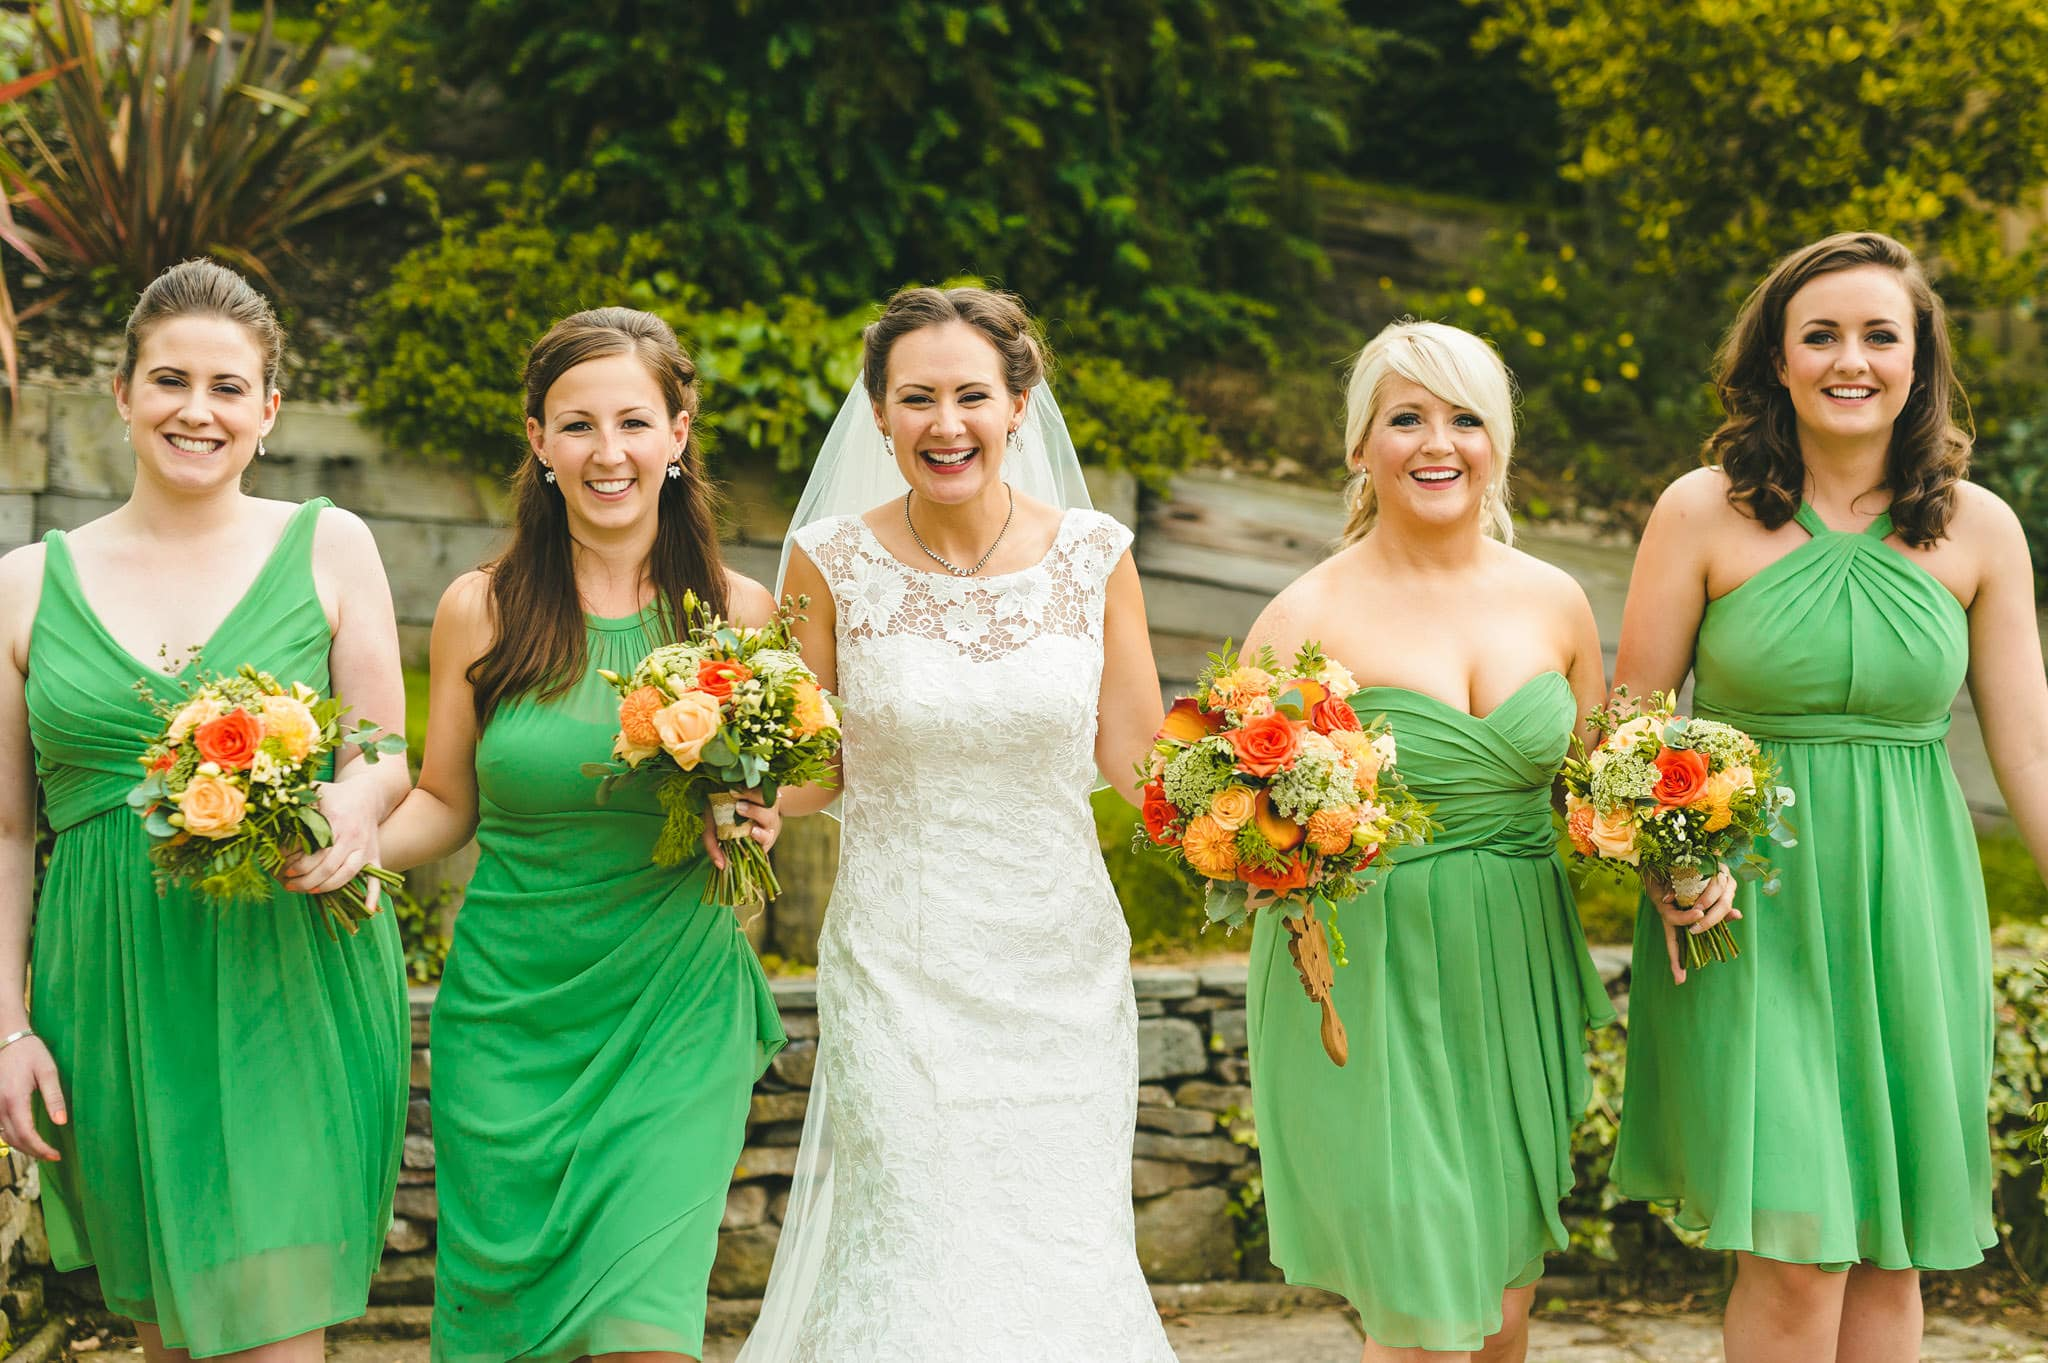 Wedding photography at Y Talbot Hotel in Tregaron, Wales | Tina + Phil 57